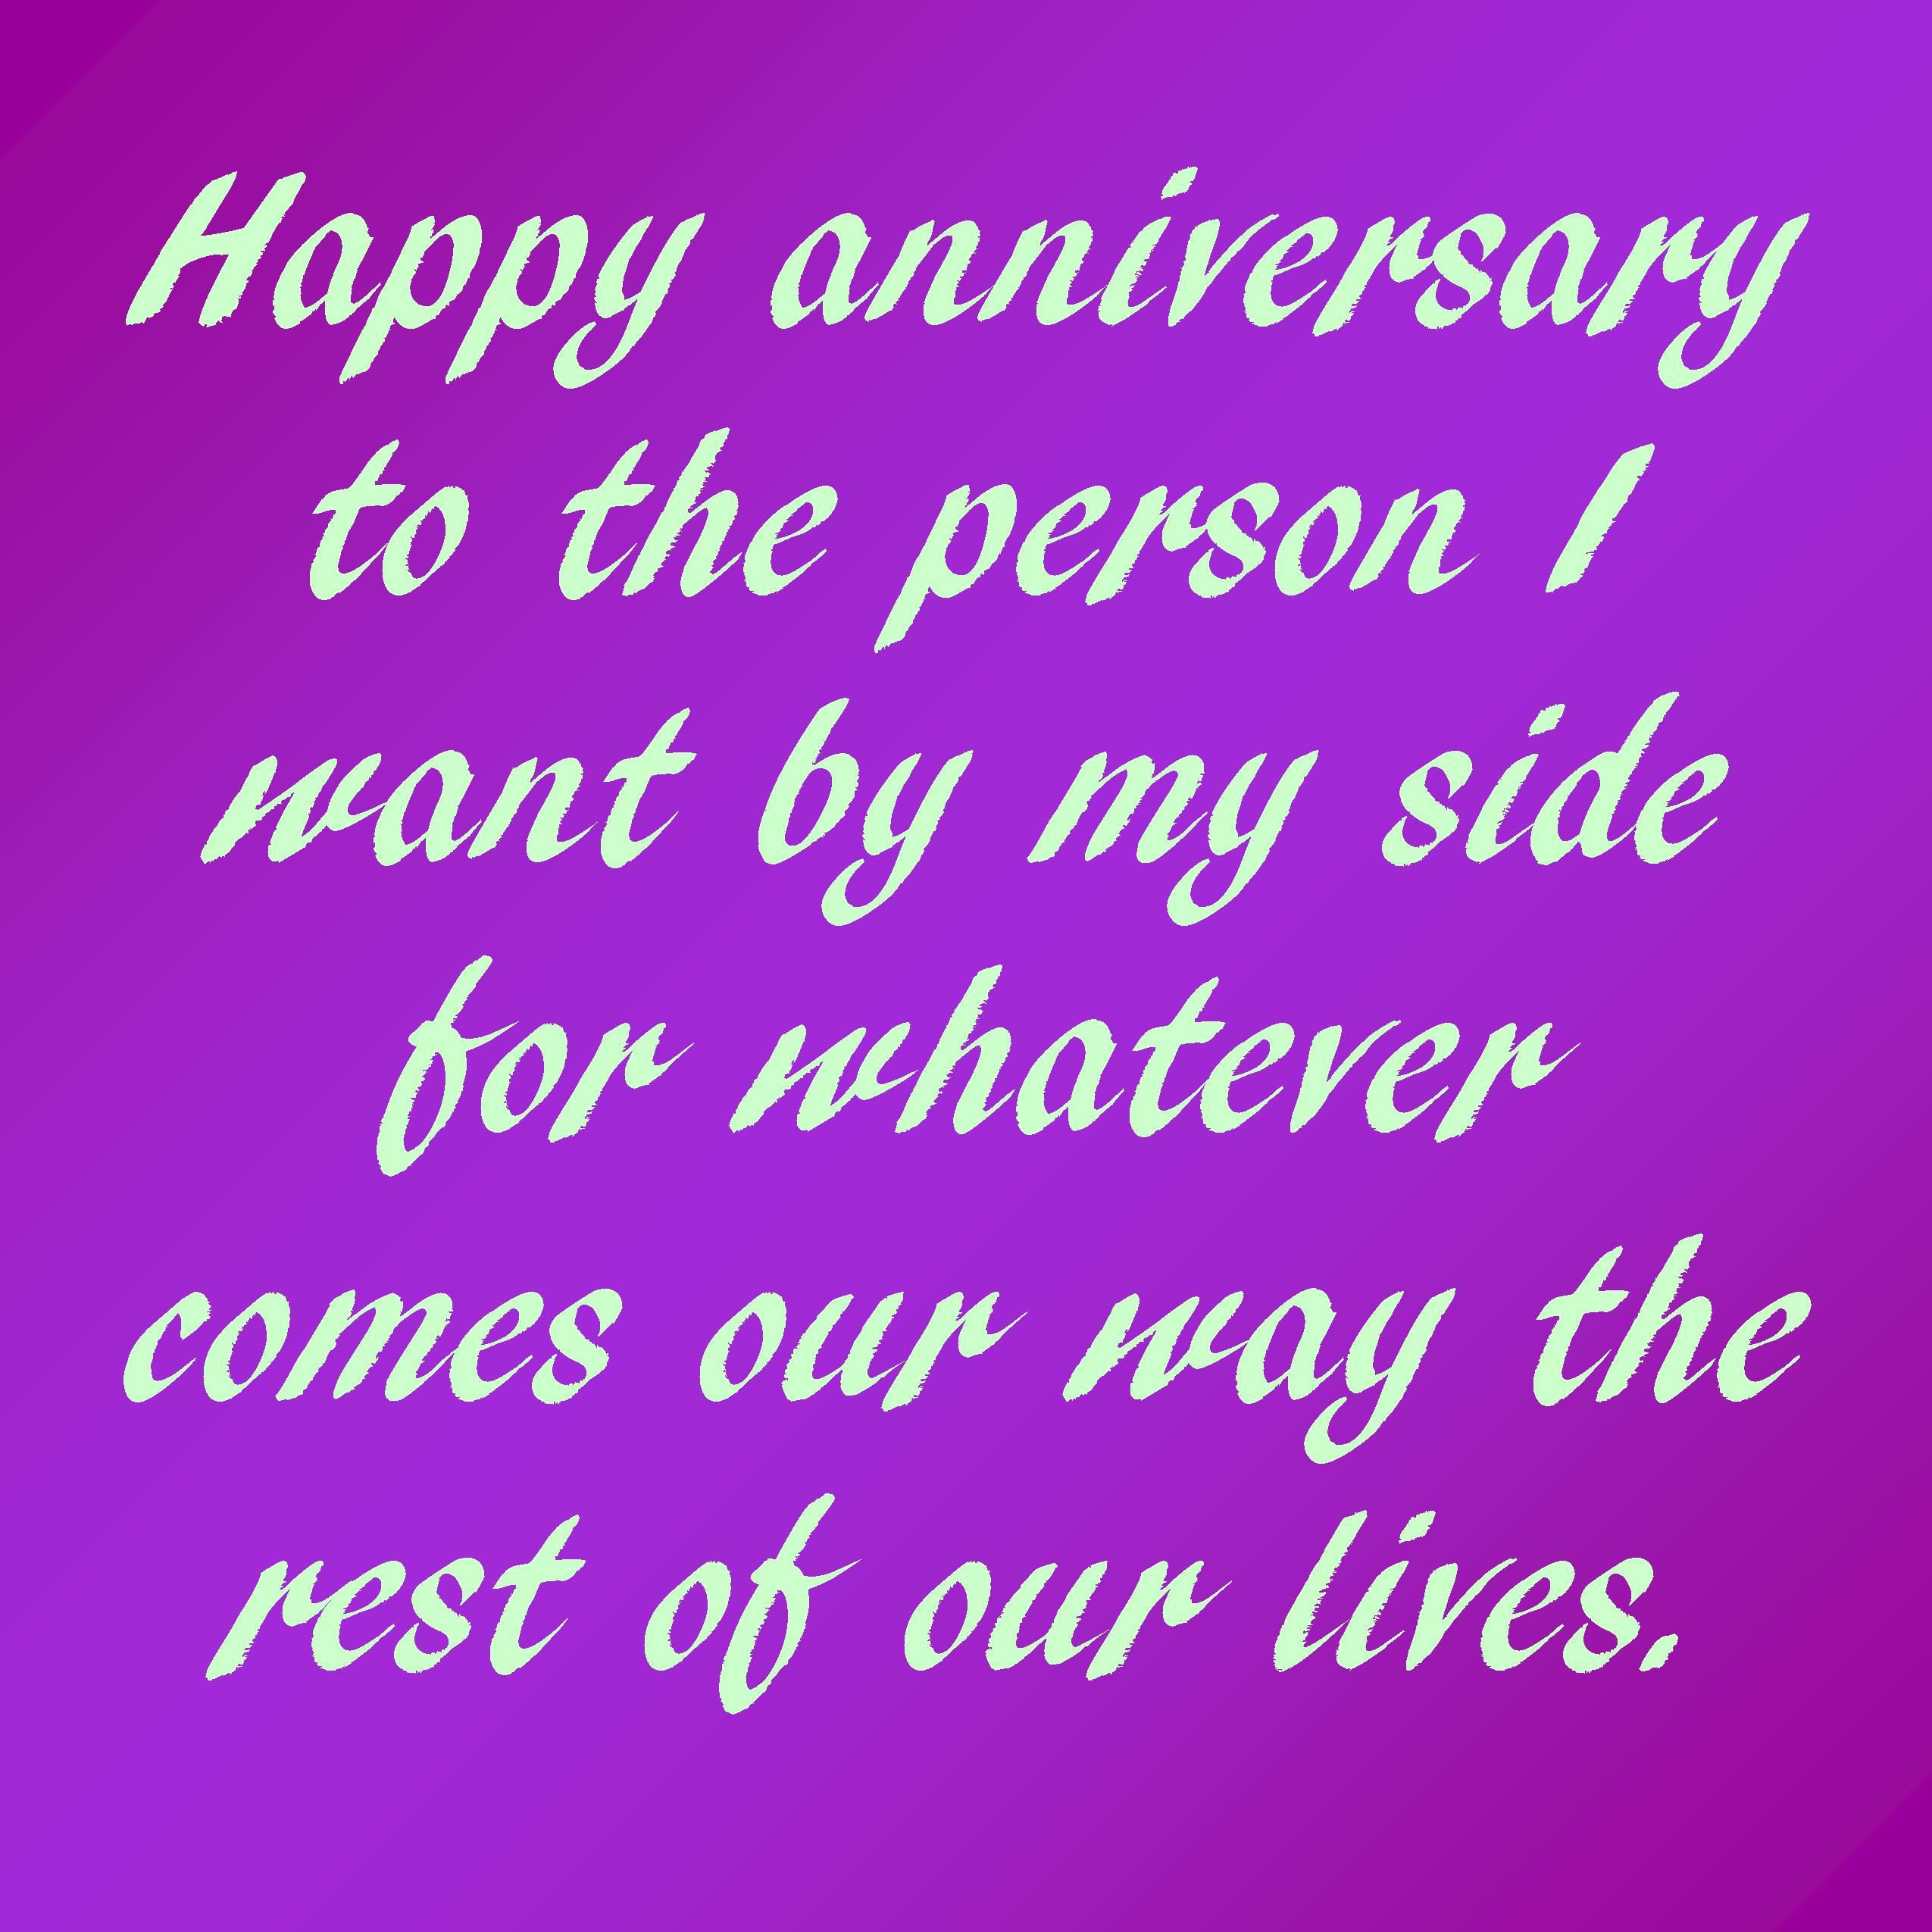 Anniversary Messages to Write in a Card for Your Spouse